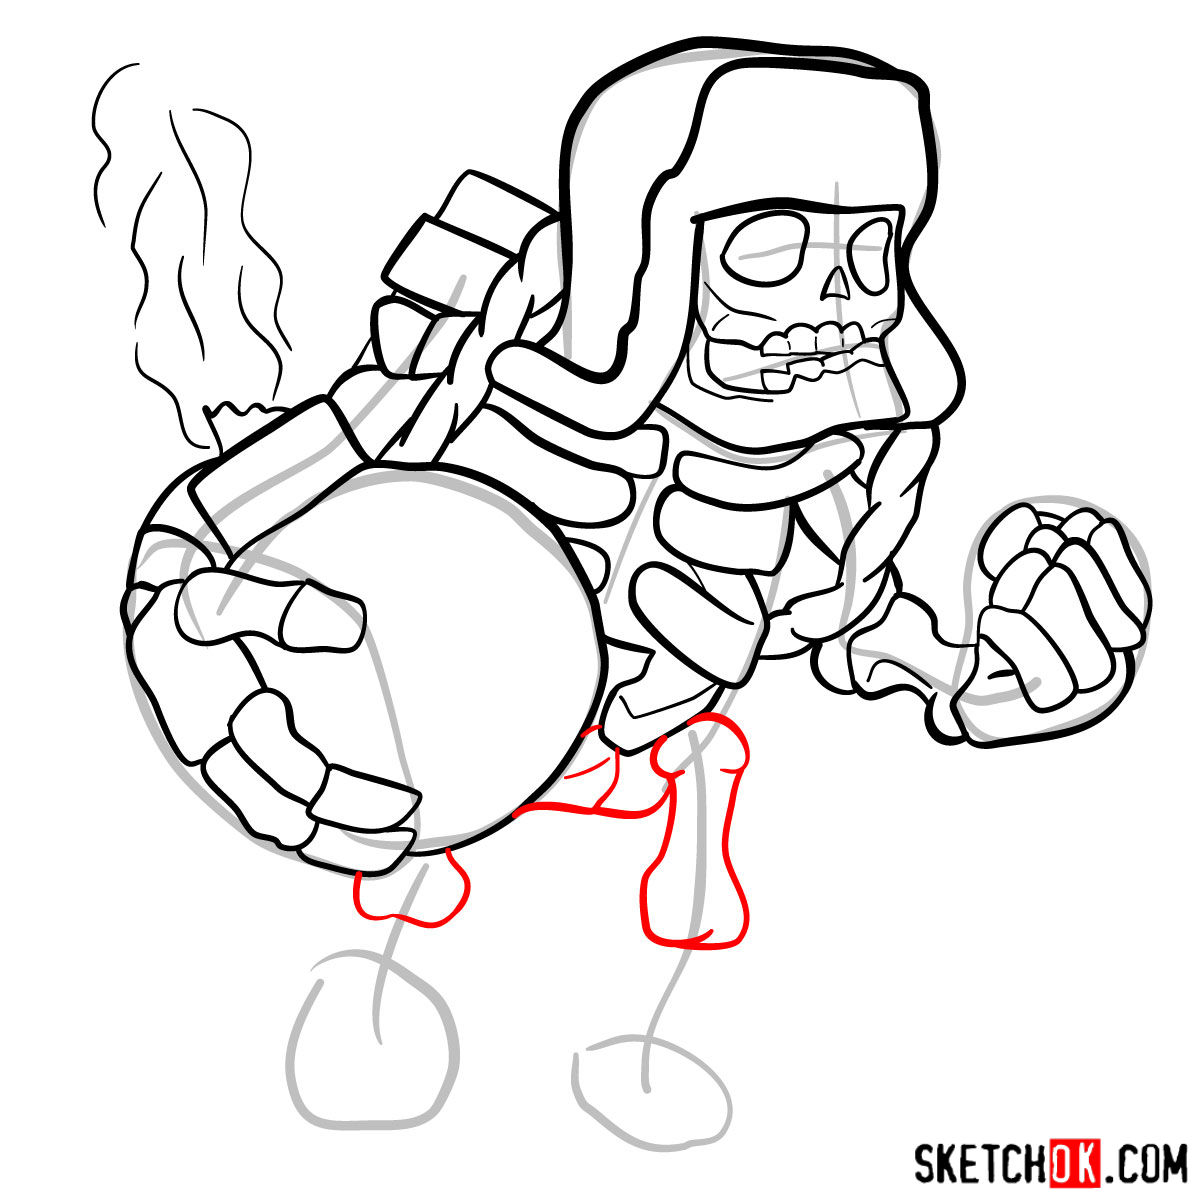 How to draw Giant Skeleton from Clash of Clans - step 10